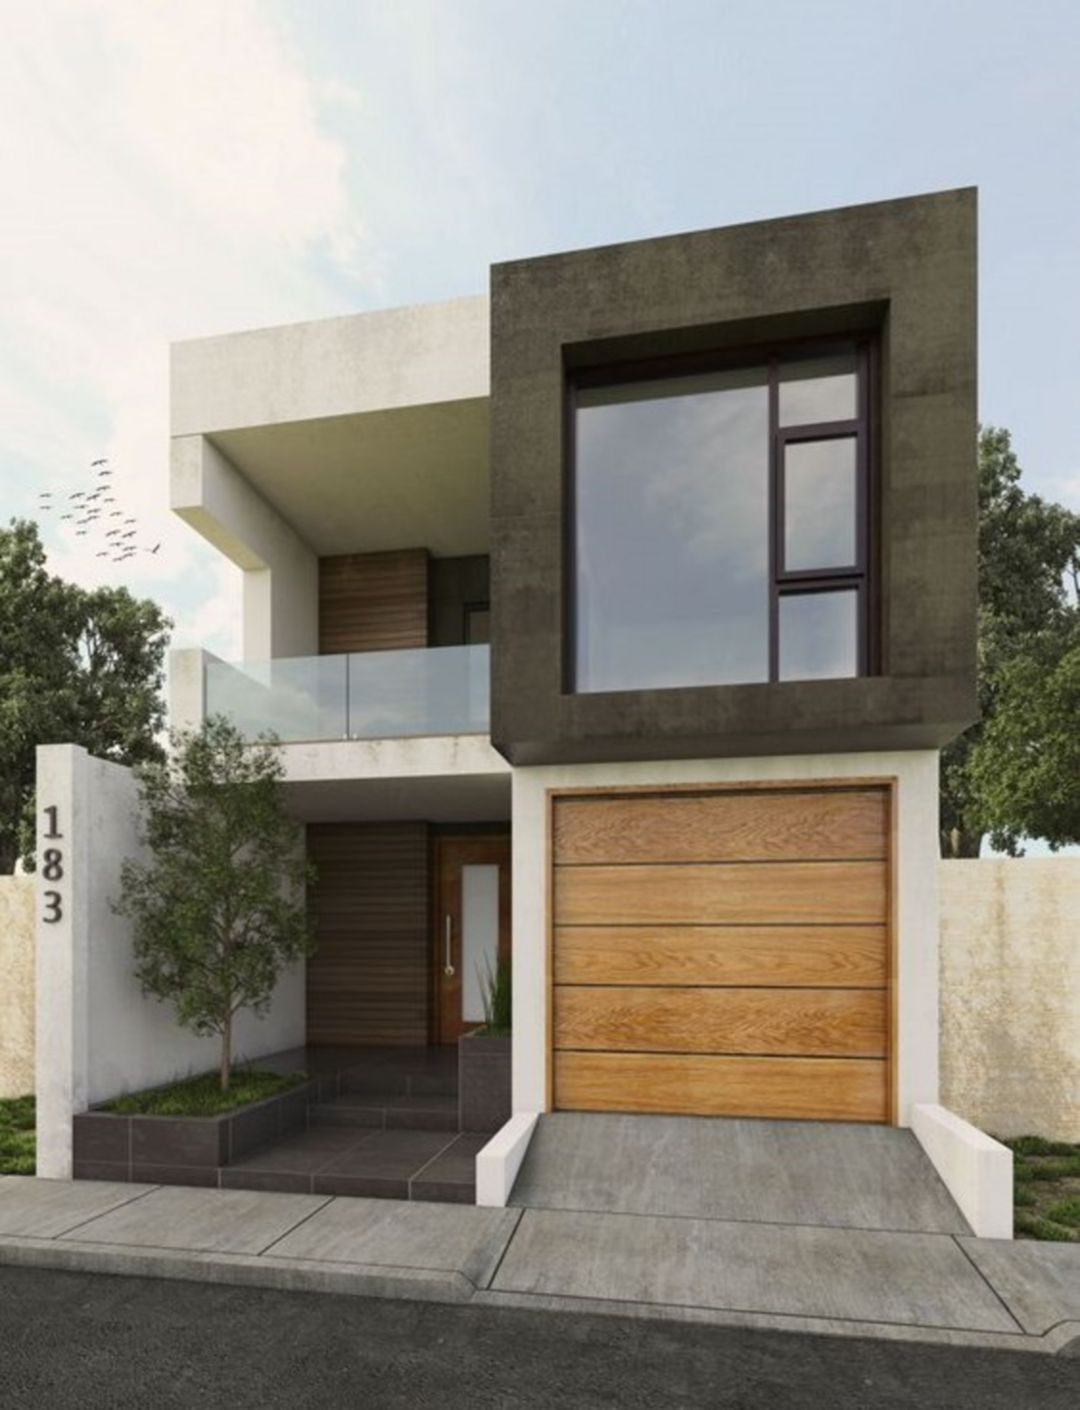 Pictures Of Small Modern Houses Best Of 13 Modern Minimalist Tiny House Design Ideas for Your